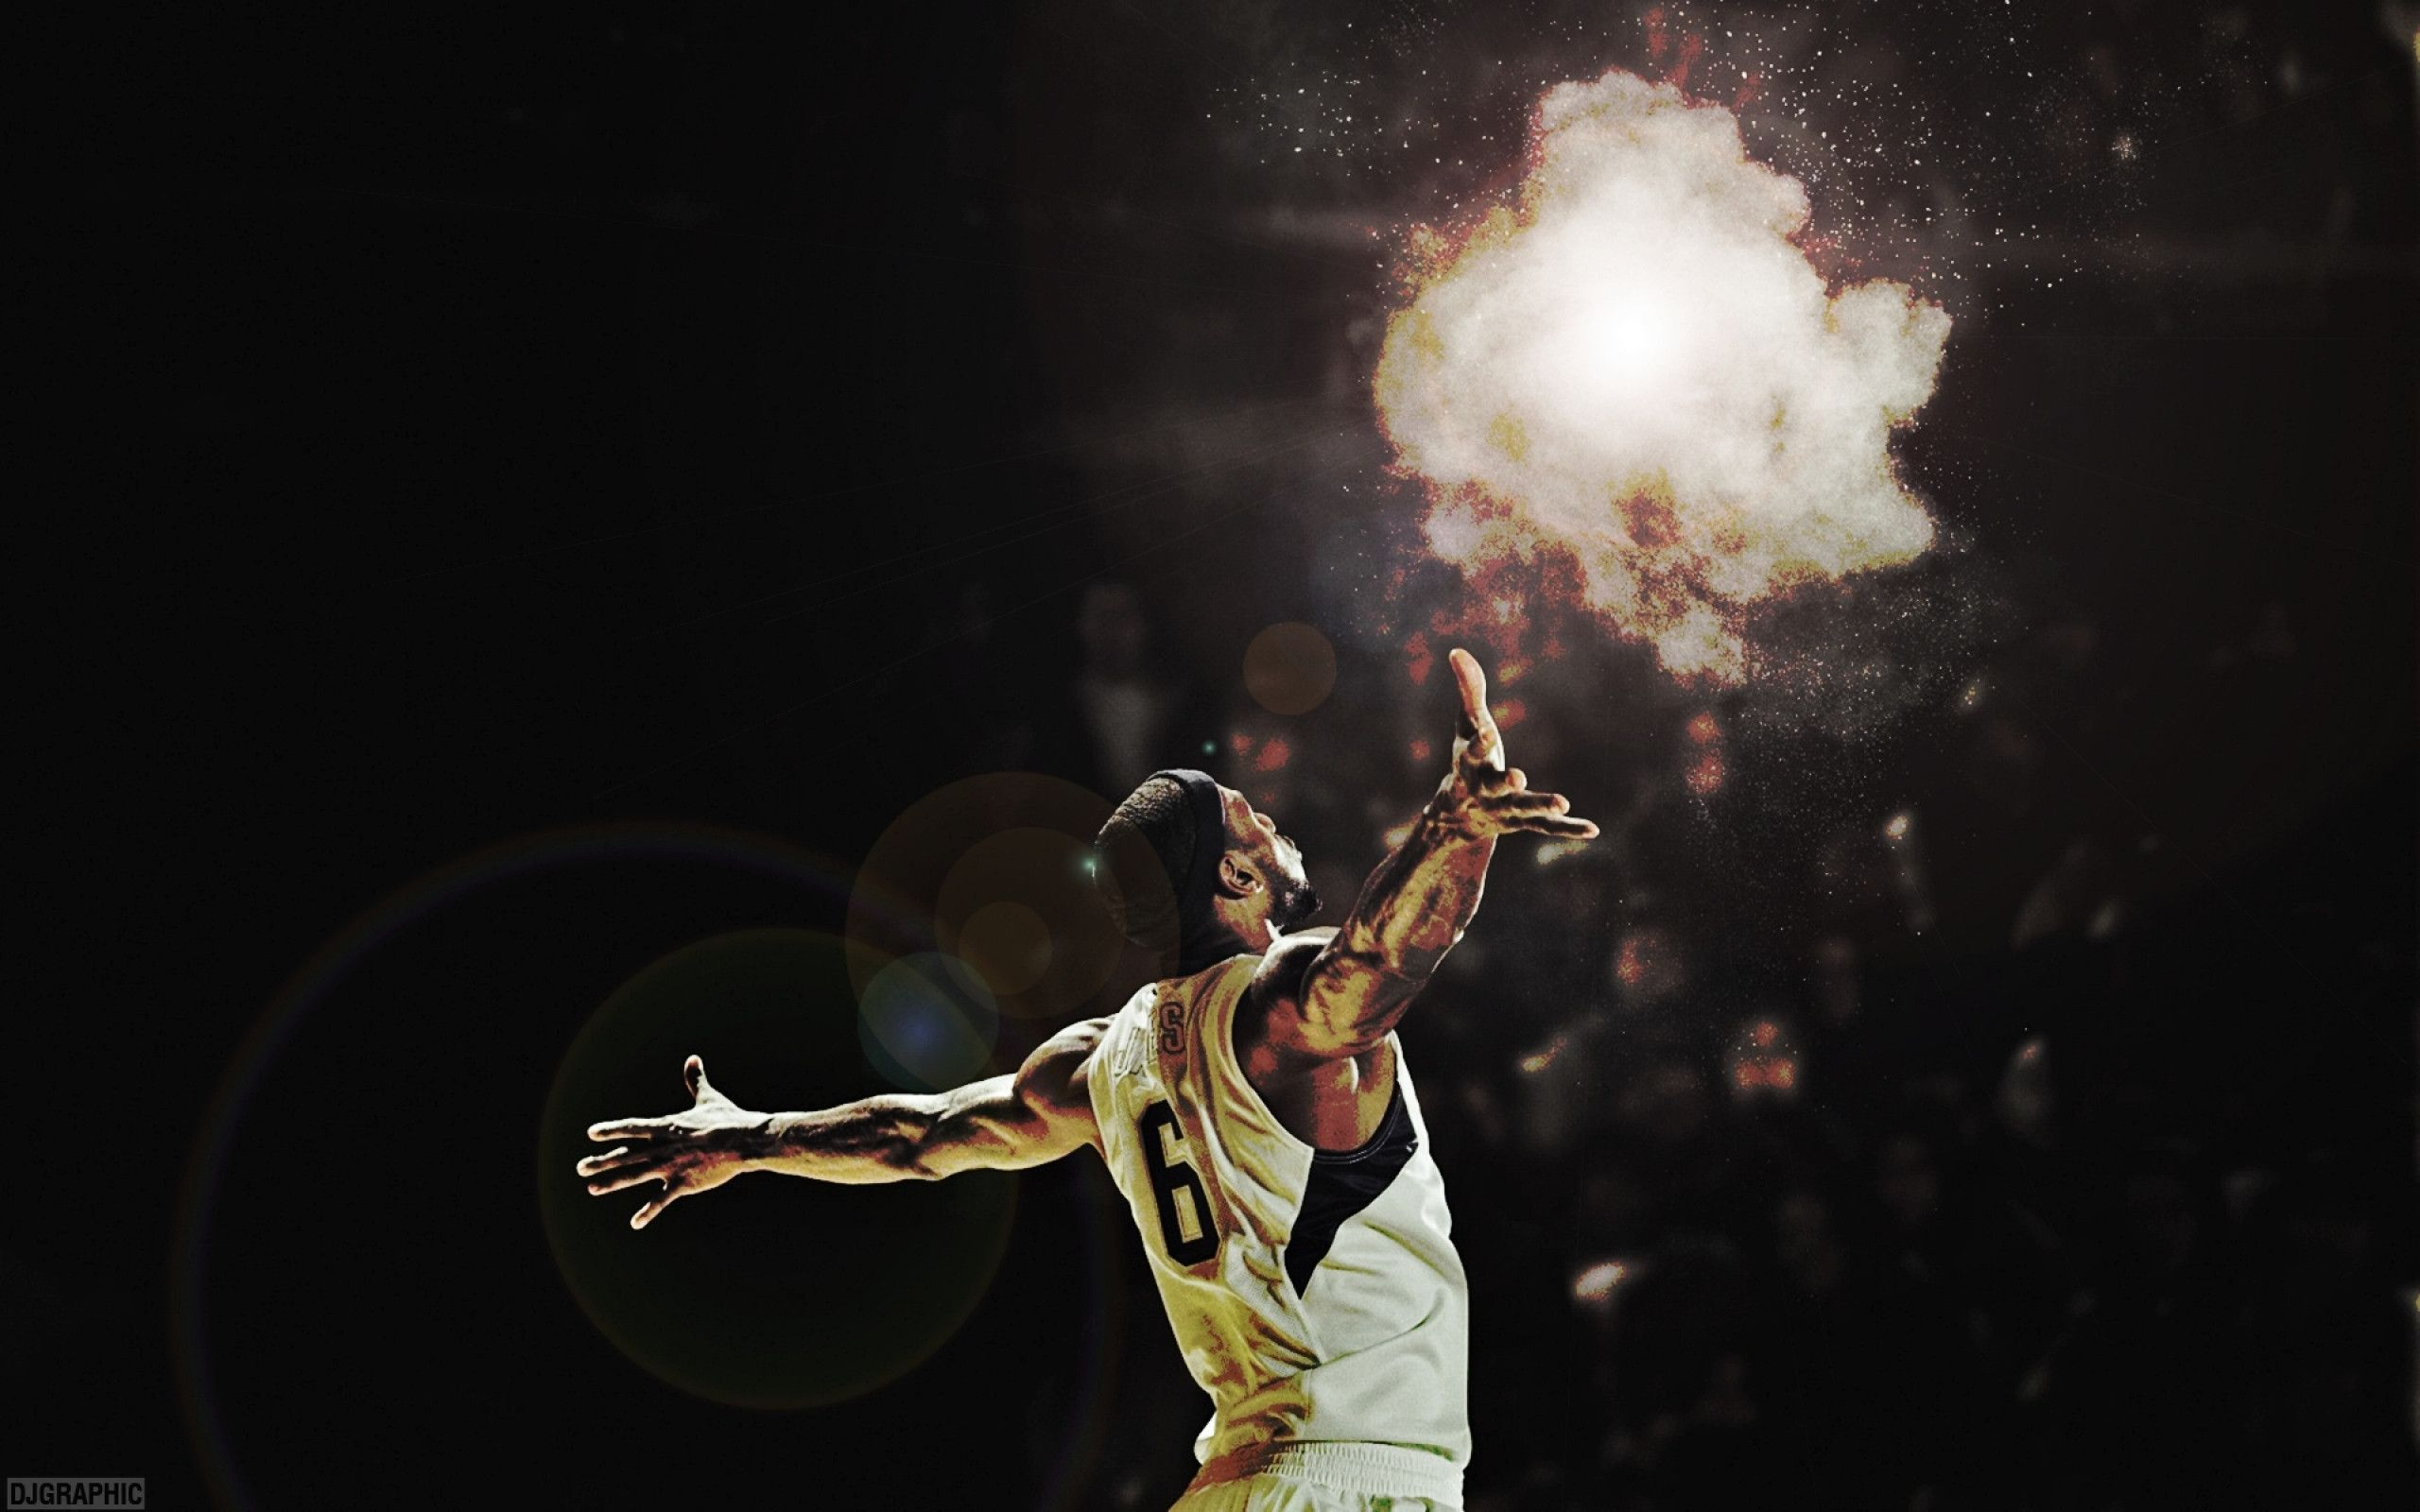 Simple Wallpaper Mac Lebron James - lebron-james-computer-wallpaper-26  Image_18762.jpg